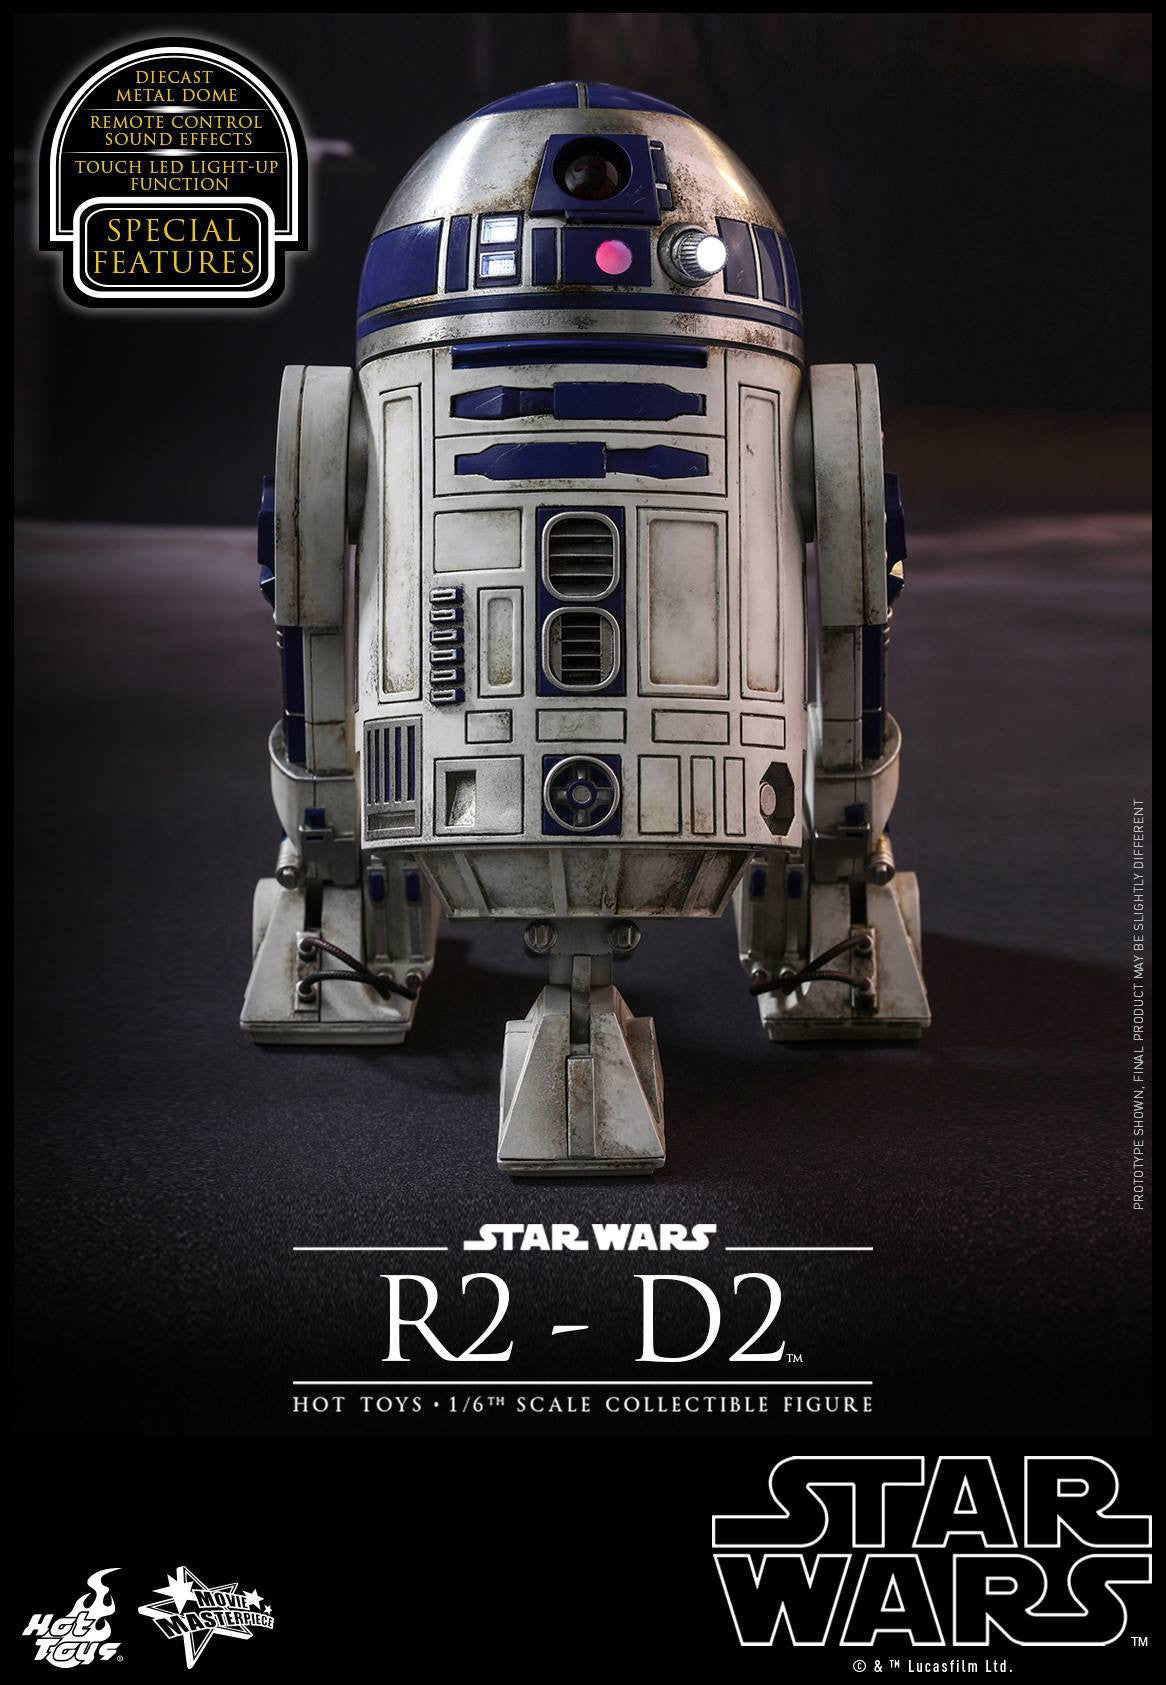 Hot Toys - MMS408 - Star Wars: The Force Awakens - R2-D2 - Marvelous Toys - 6